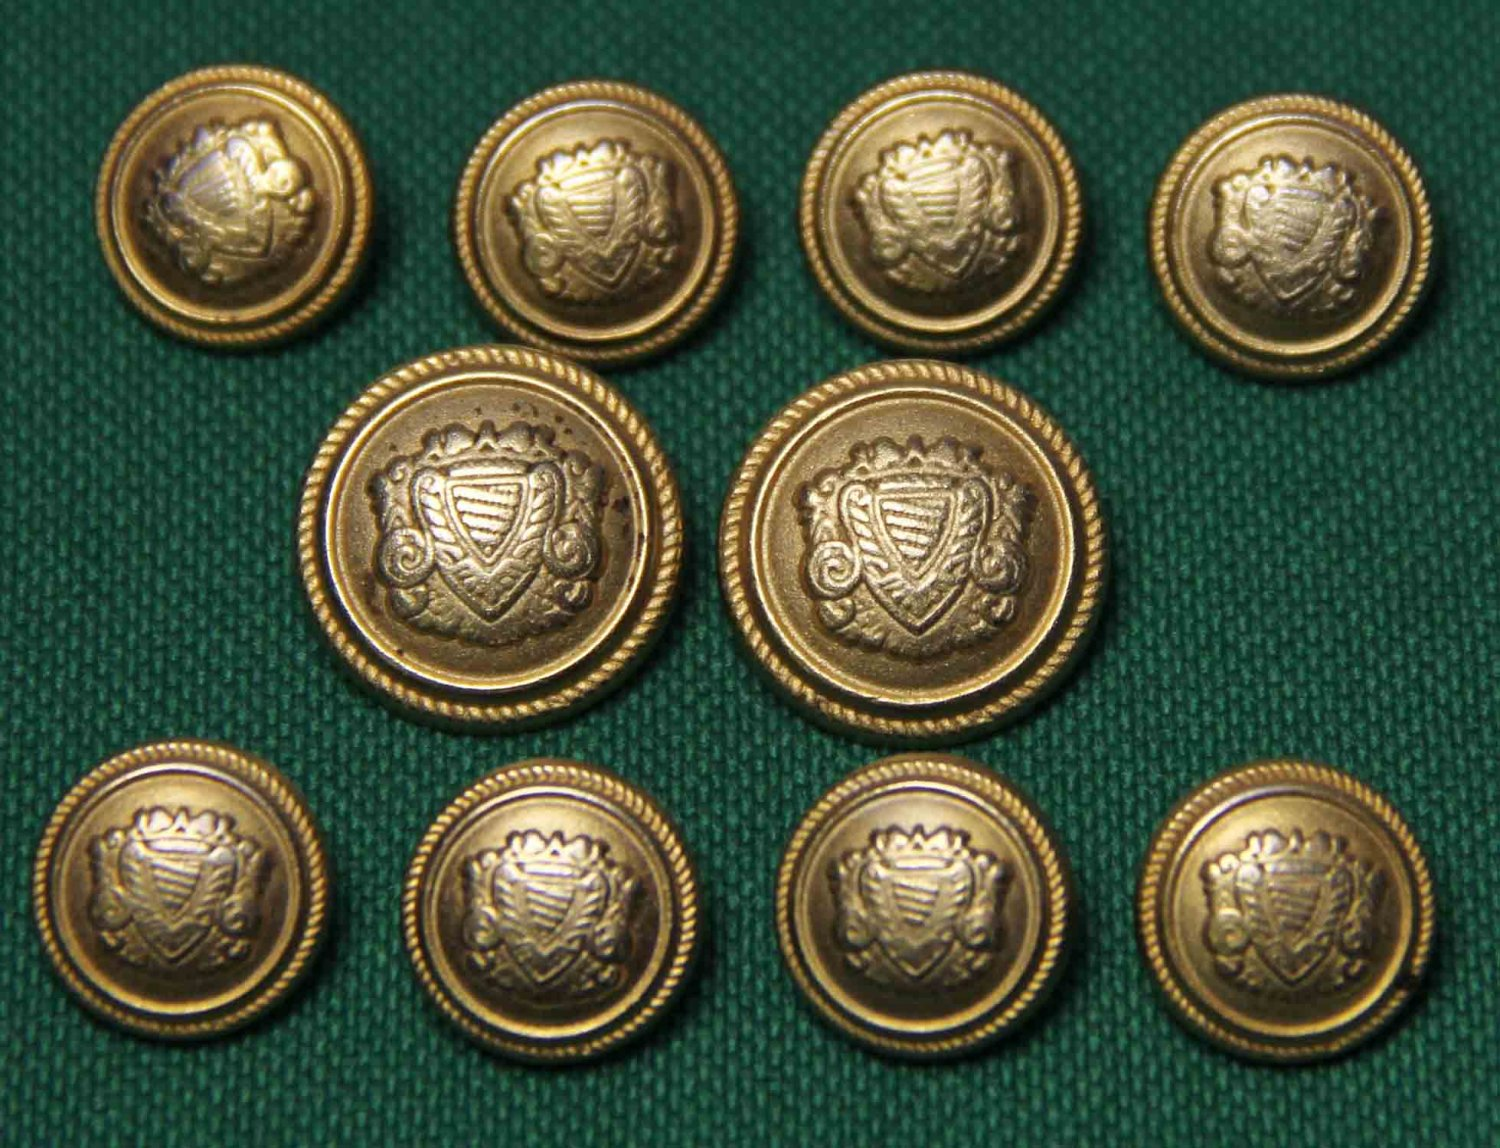 Vintage Aquascutum Blazer Buttons Set Gold Regal Shield Shank Men's